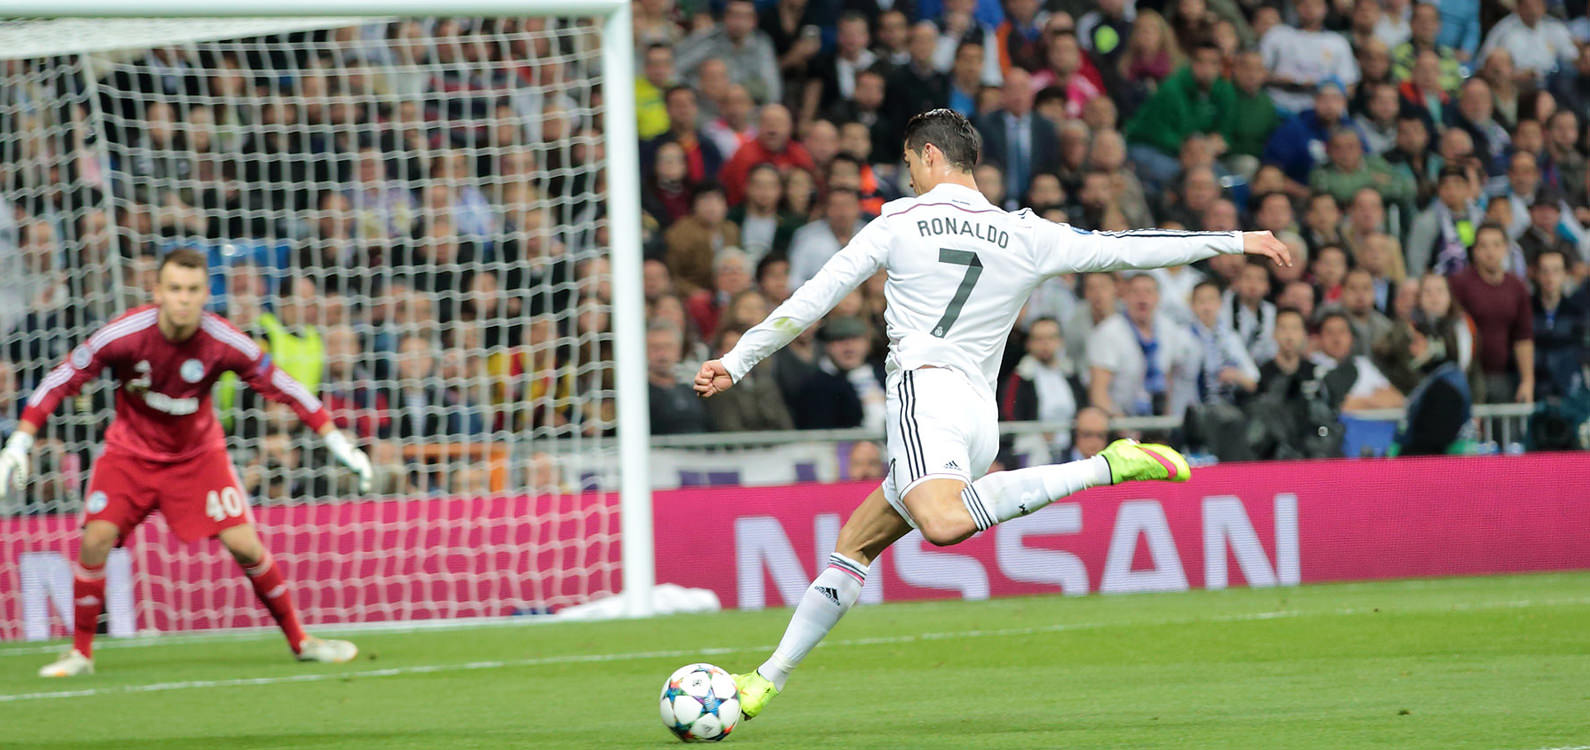 Real Madrid Football Club, Ronaldo Shooting at Goal